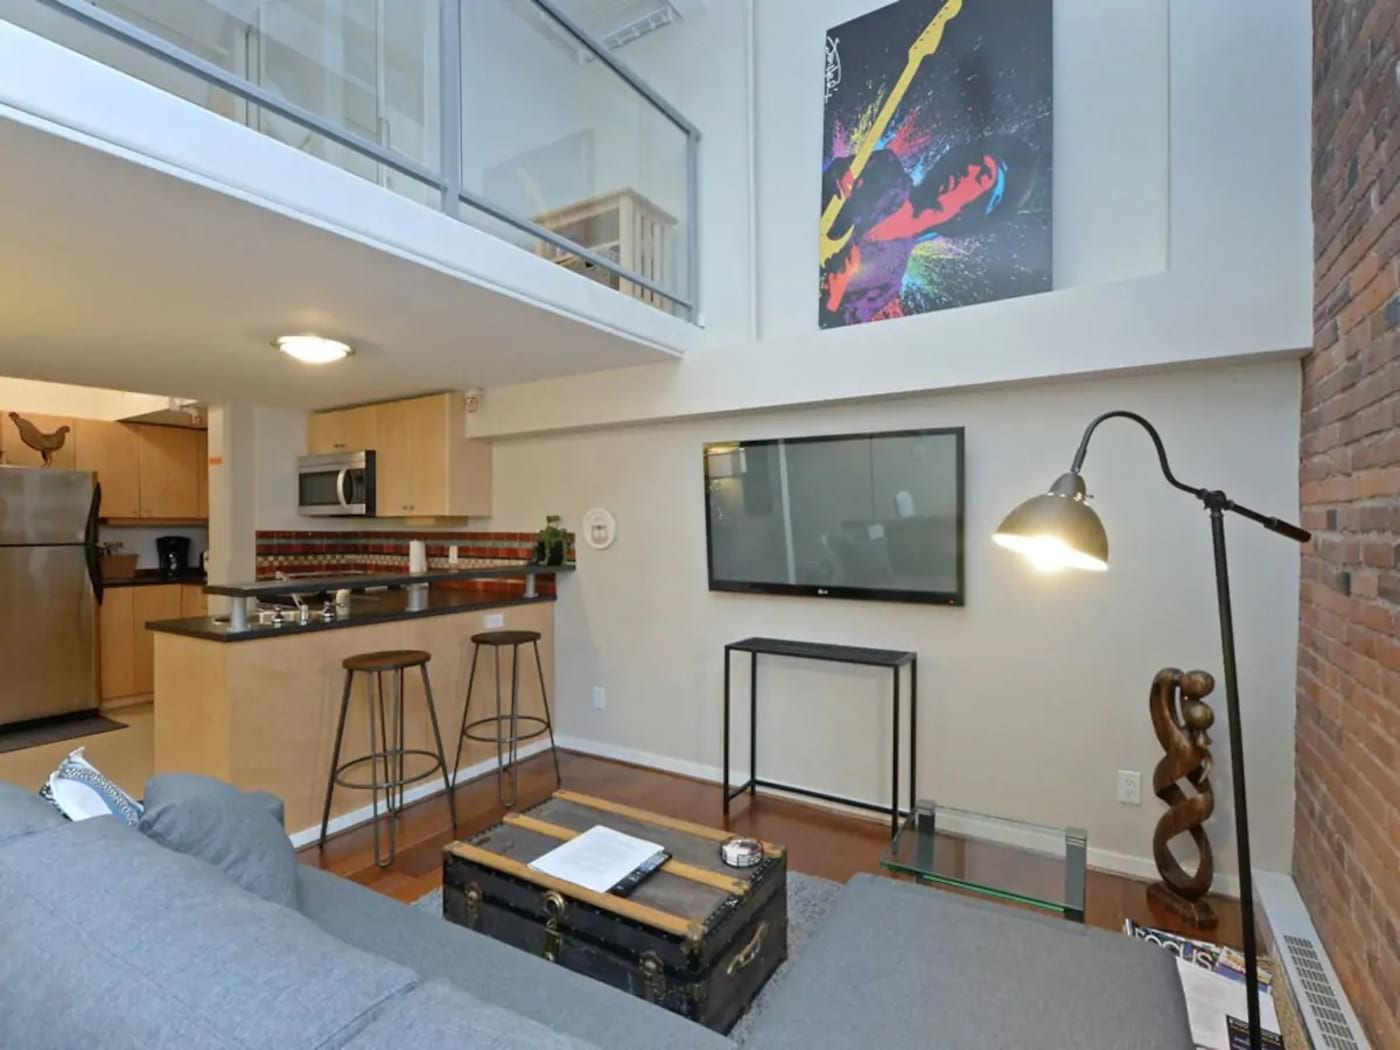 Overall best value Airbnb in Victoria – Whimsical Heritage Loft